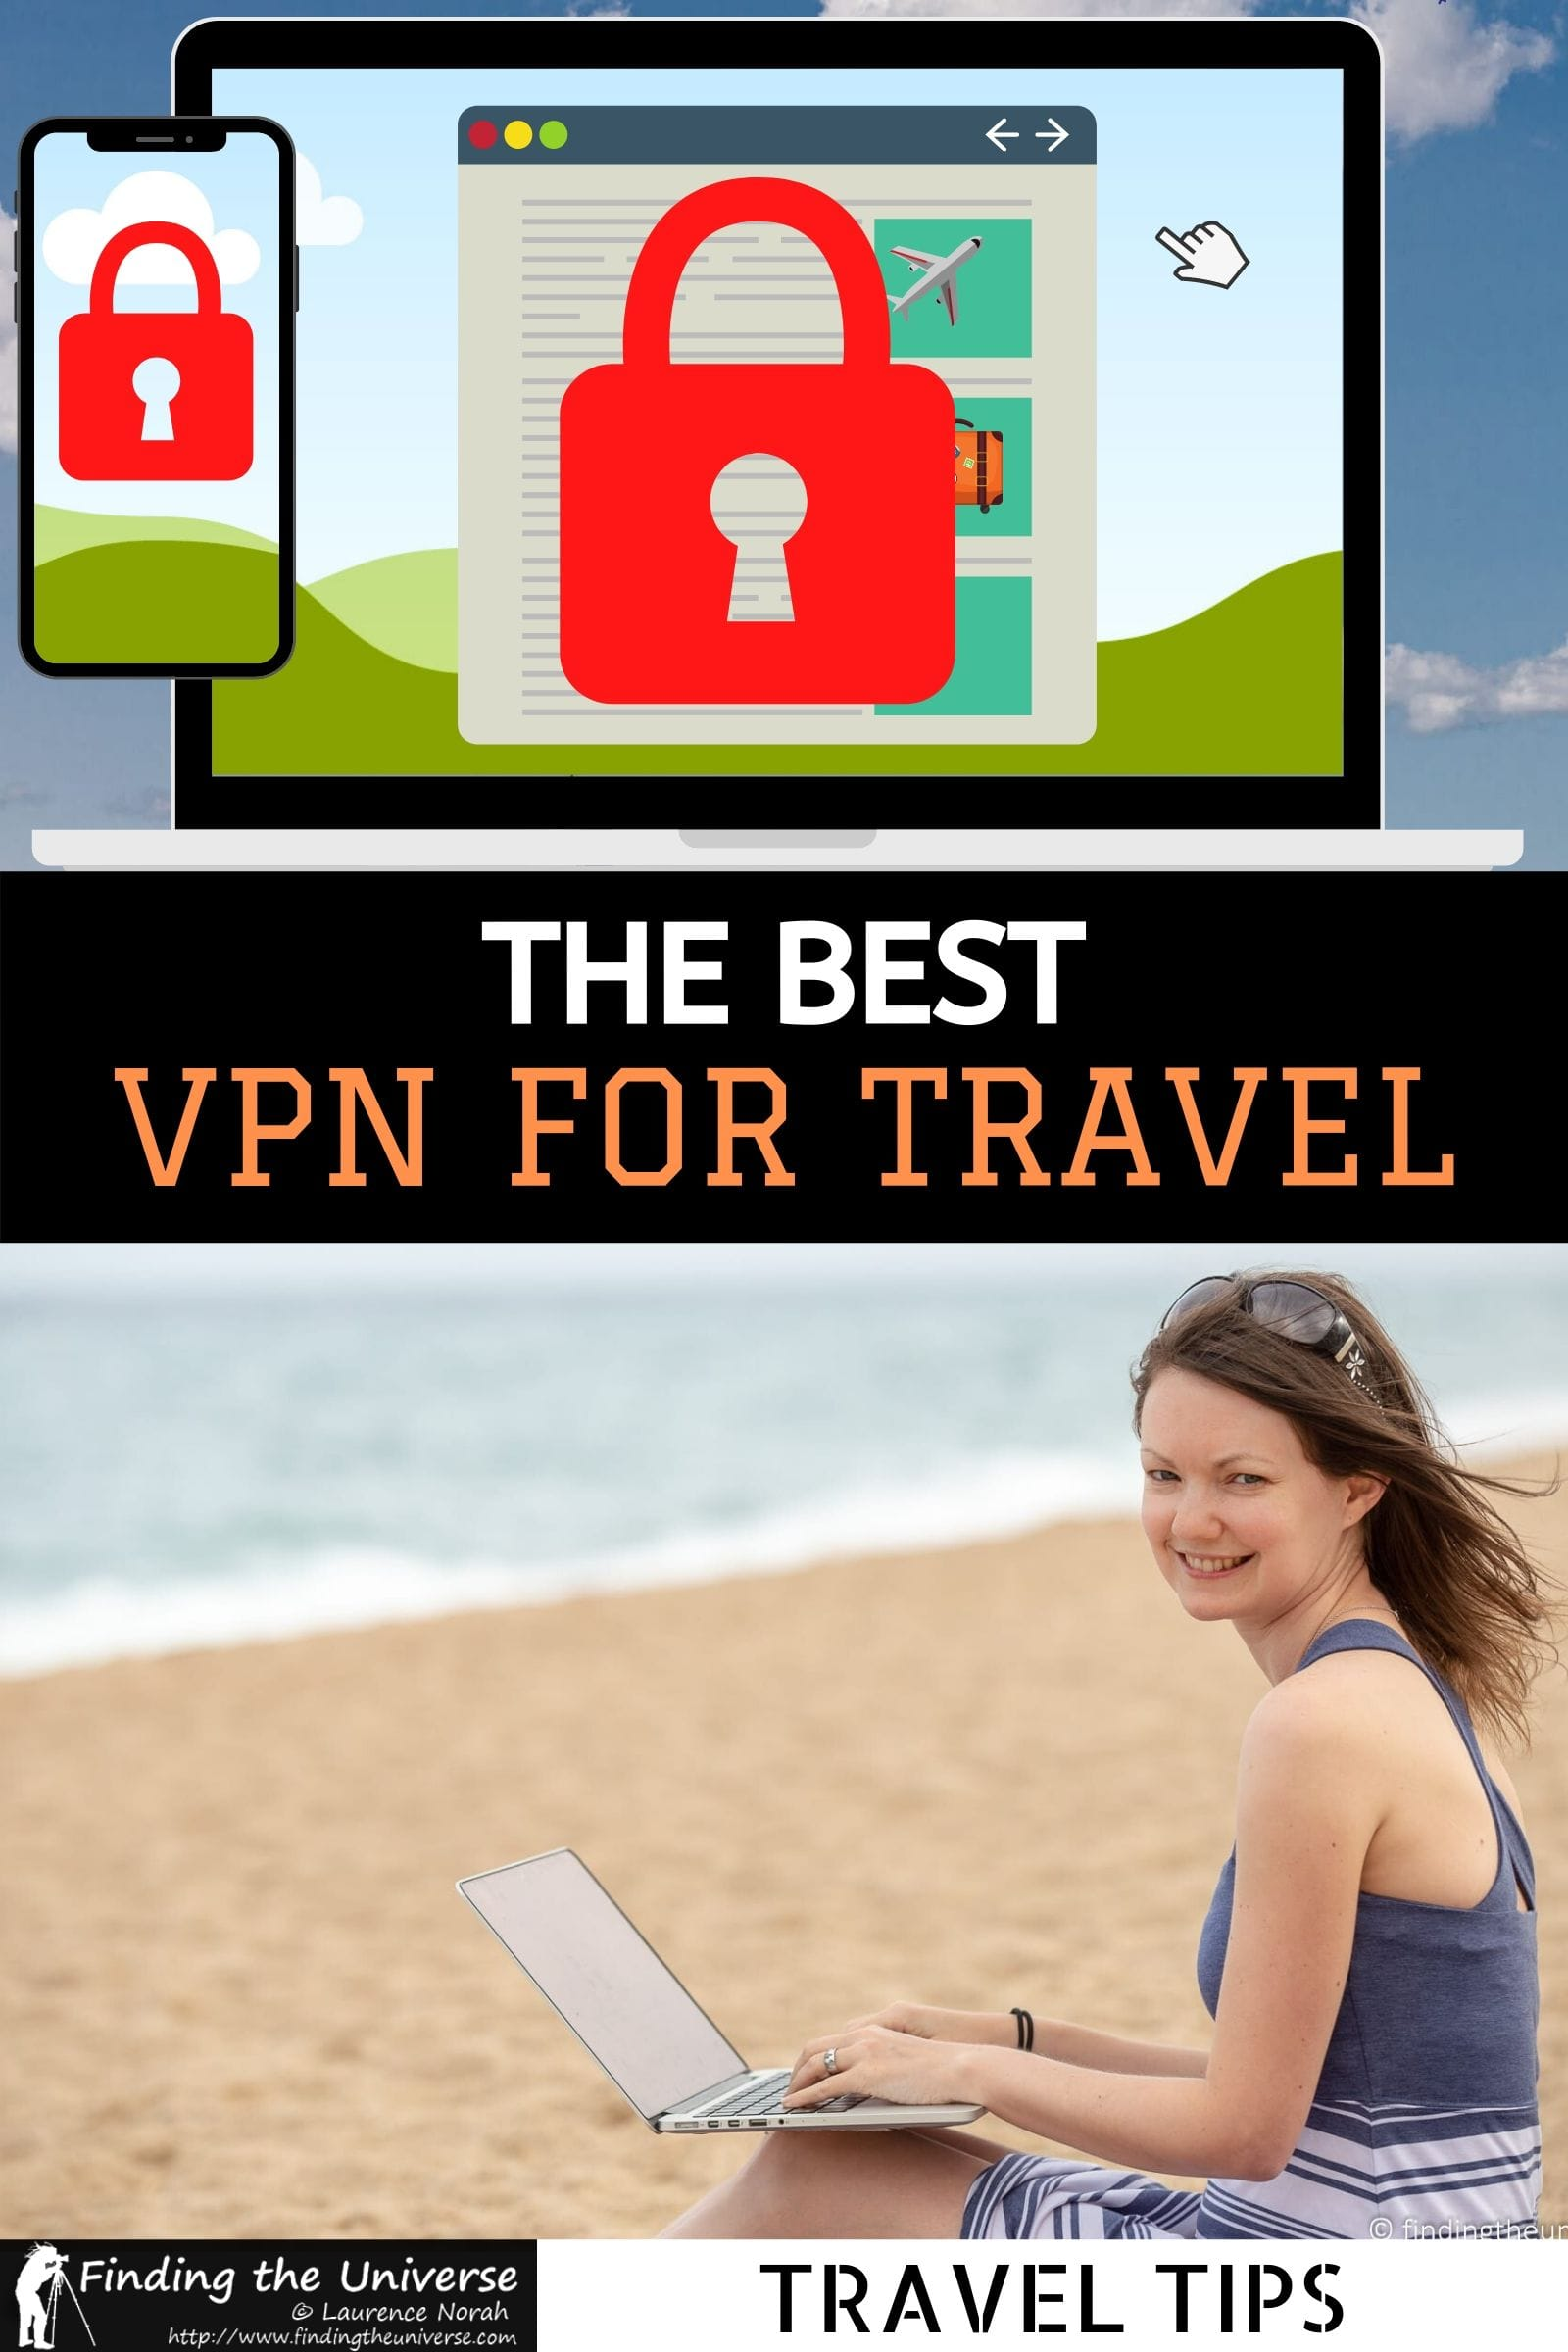 Want to keep your data safe online? You need a VPN. Read our guide to the best VPNs for travel, plus what to look for in a VPN and why you need a travel VPN